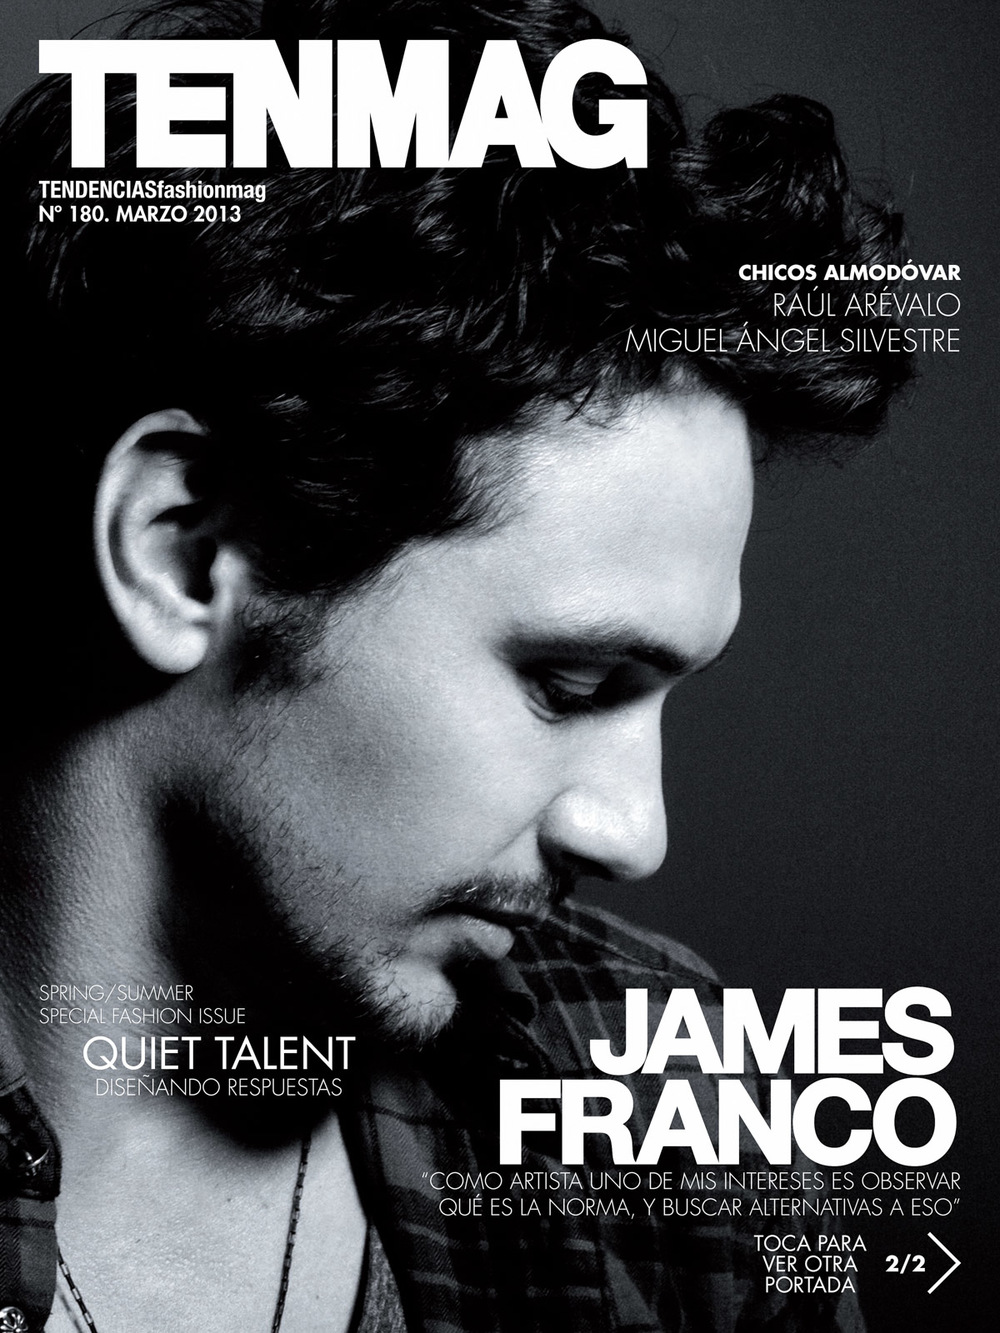 James Franco - Cover.jpg